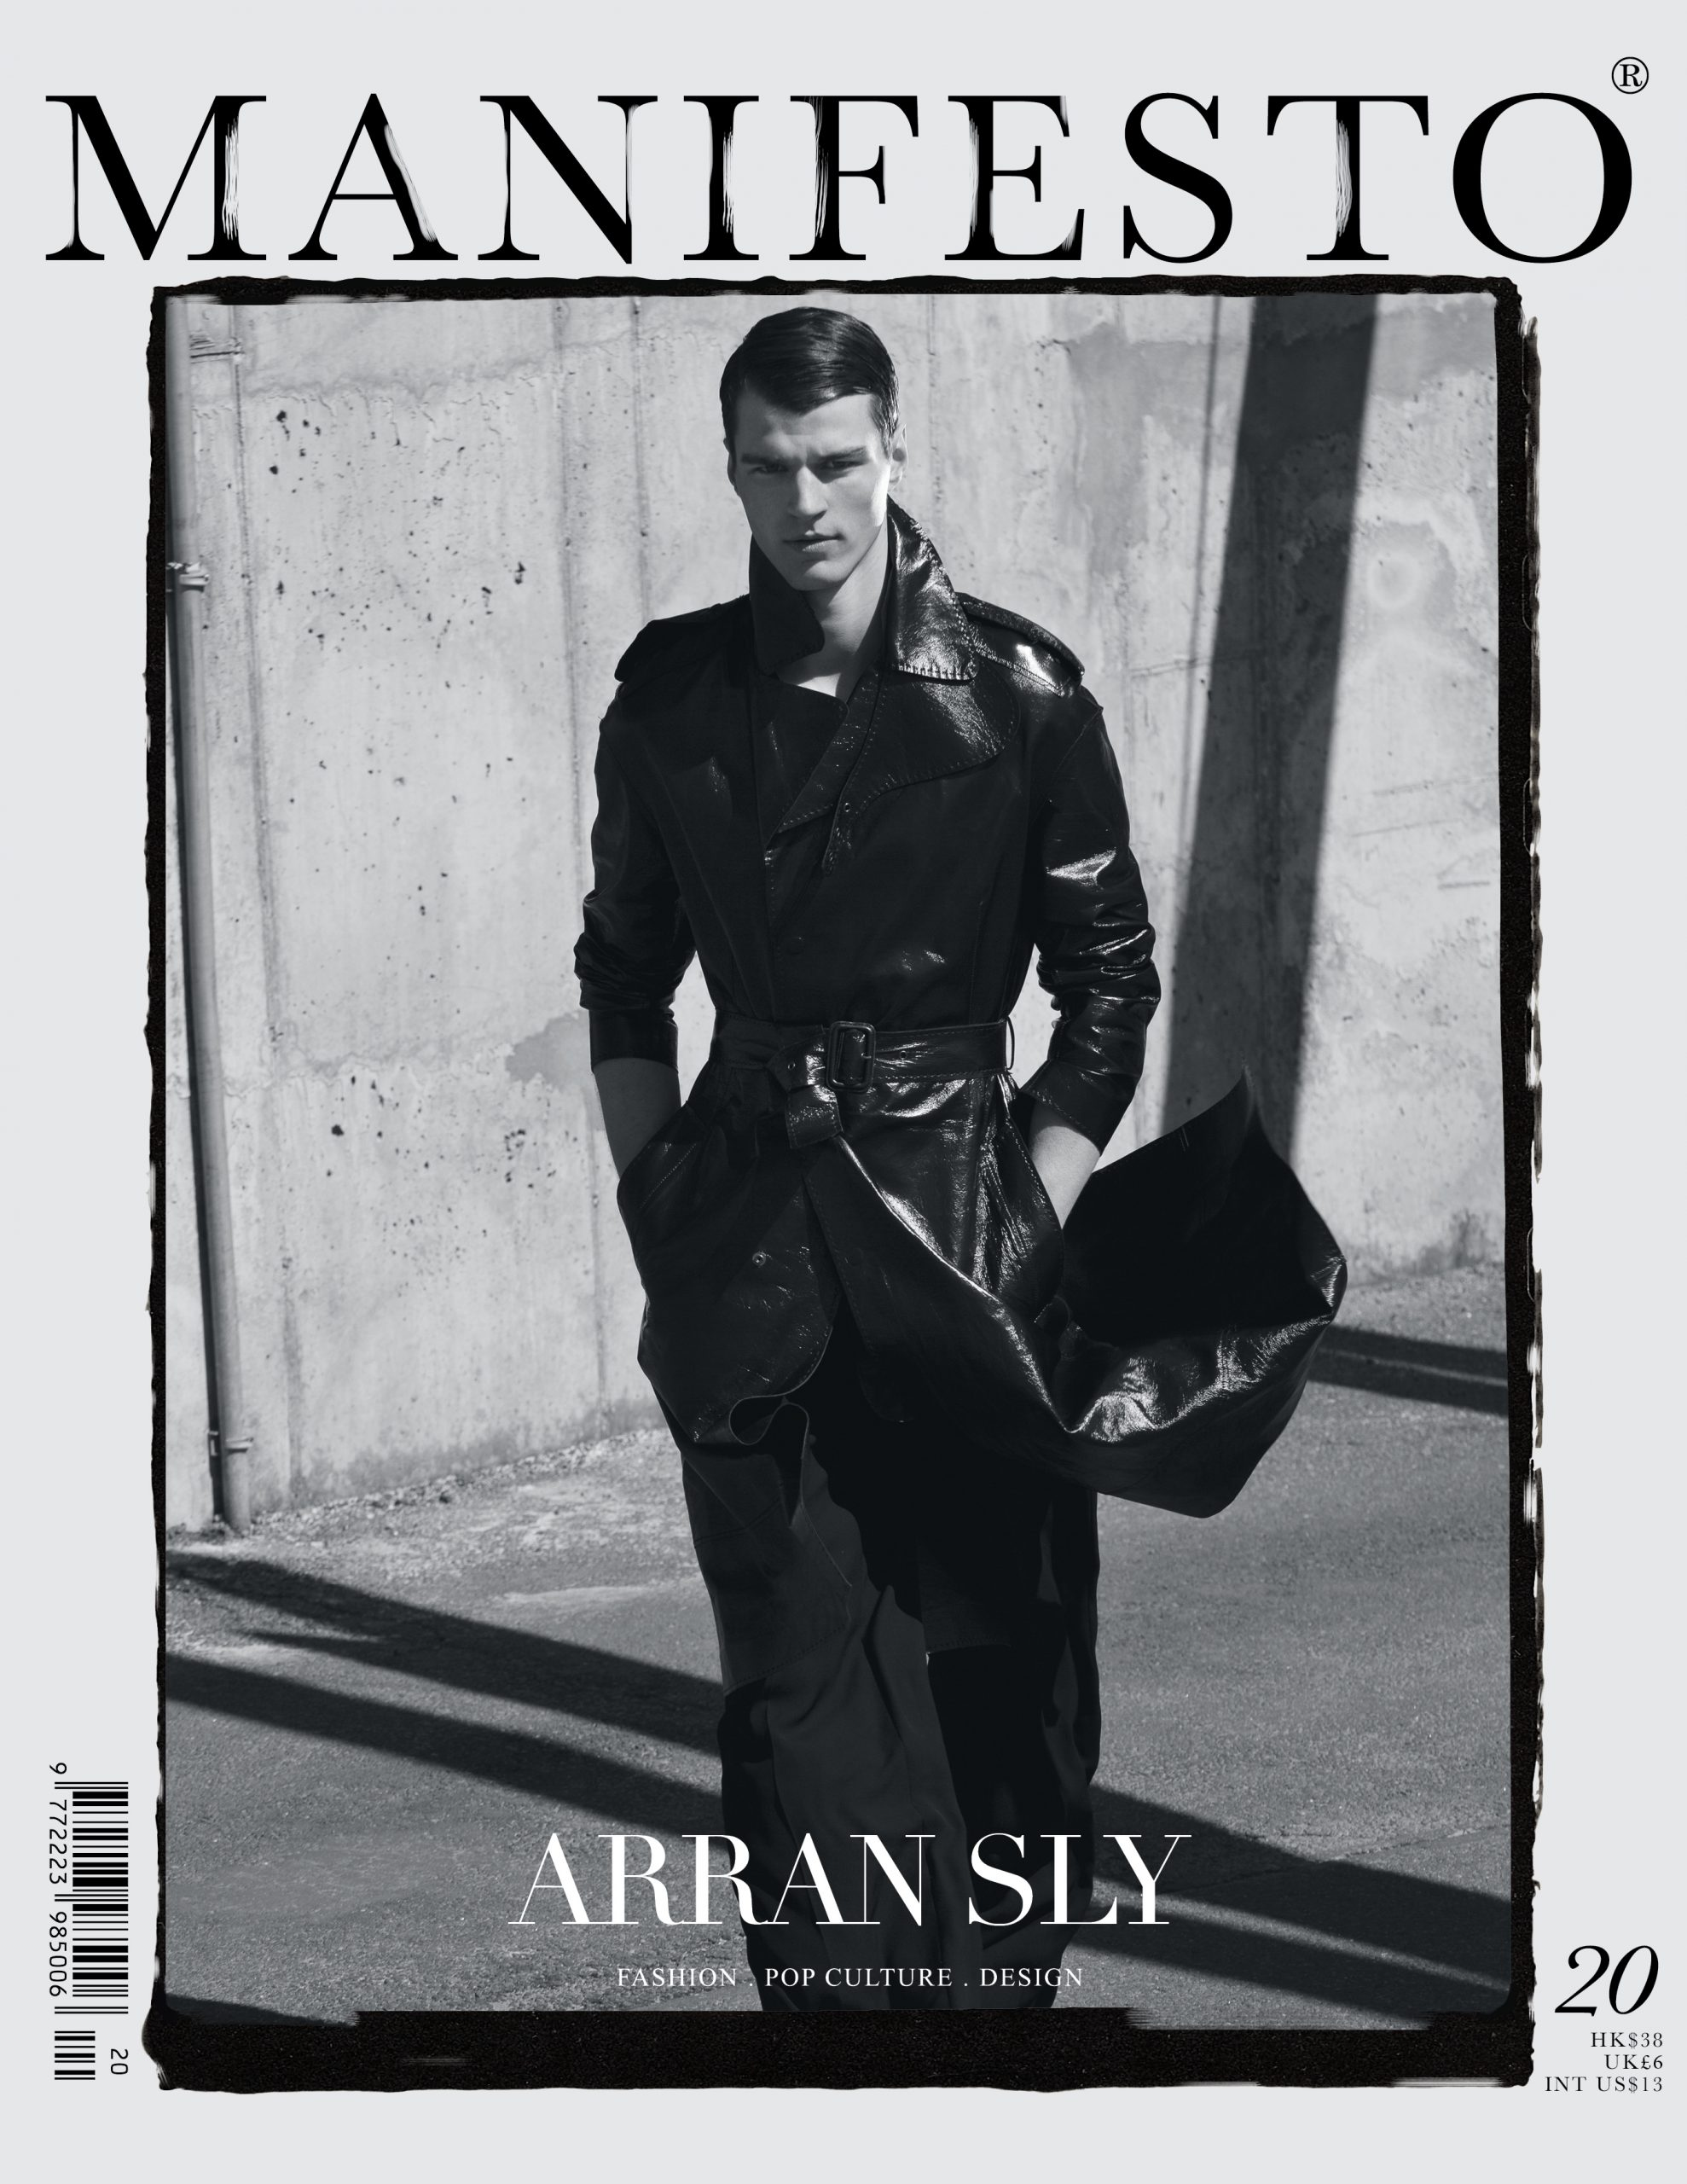 arran sly fashion model manifesto magazine cover fashion menswear